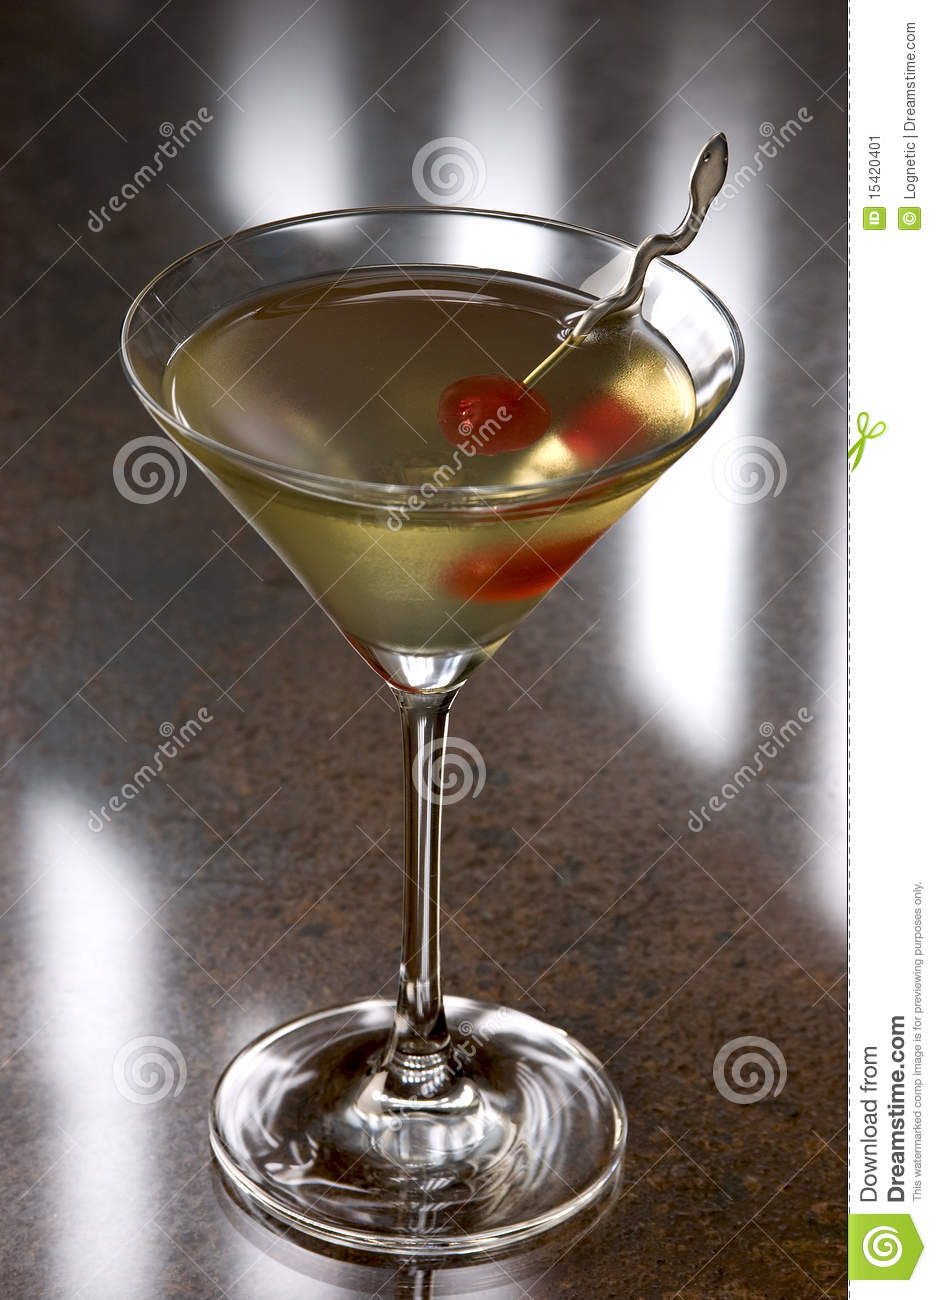 Tipperary Cocktail Stock Image - Image: 15420401